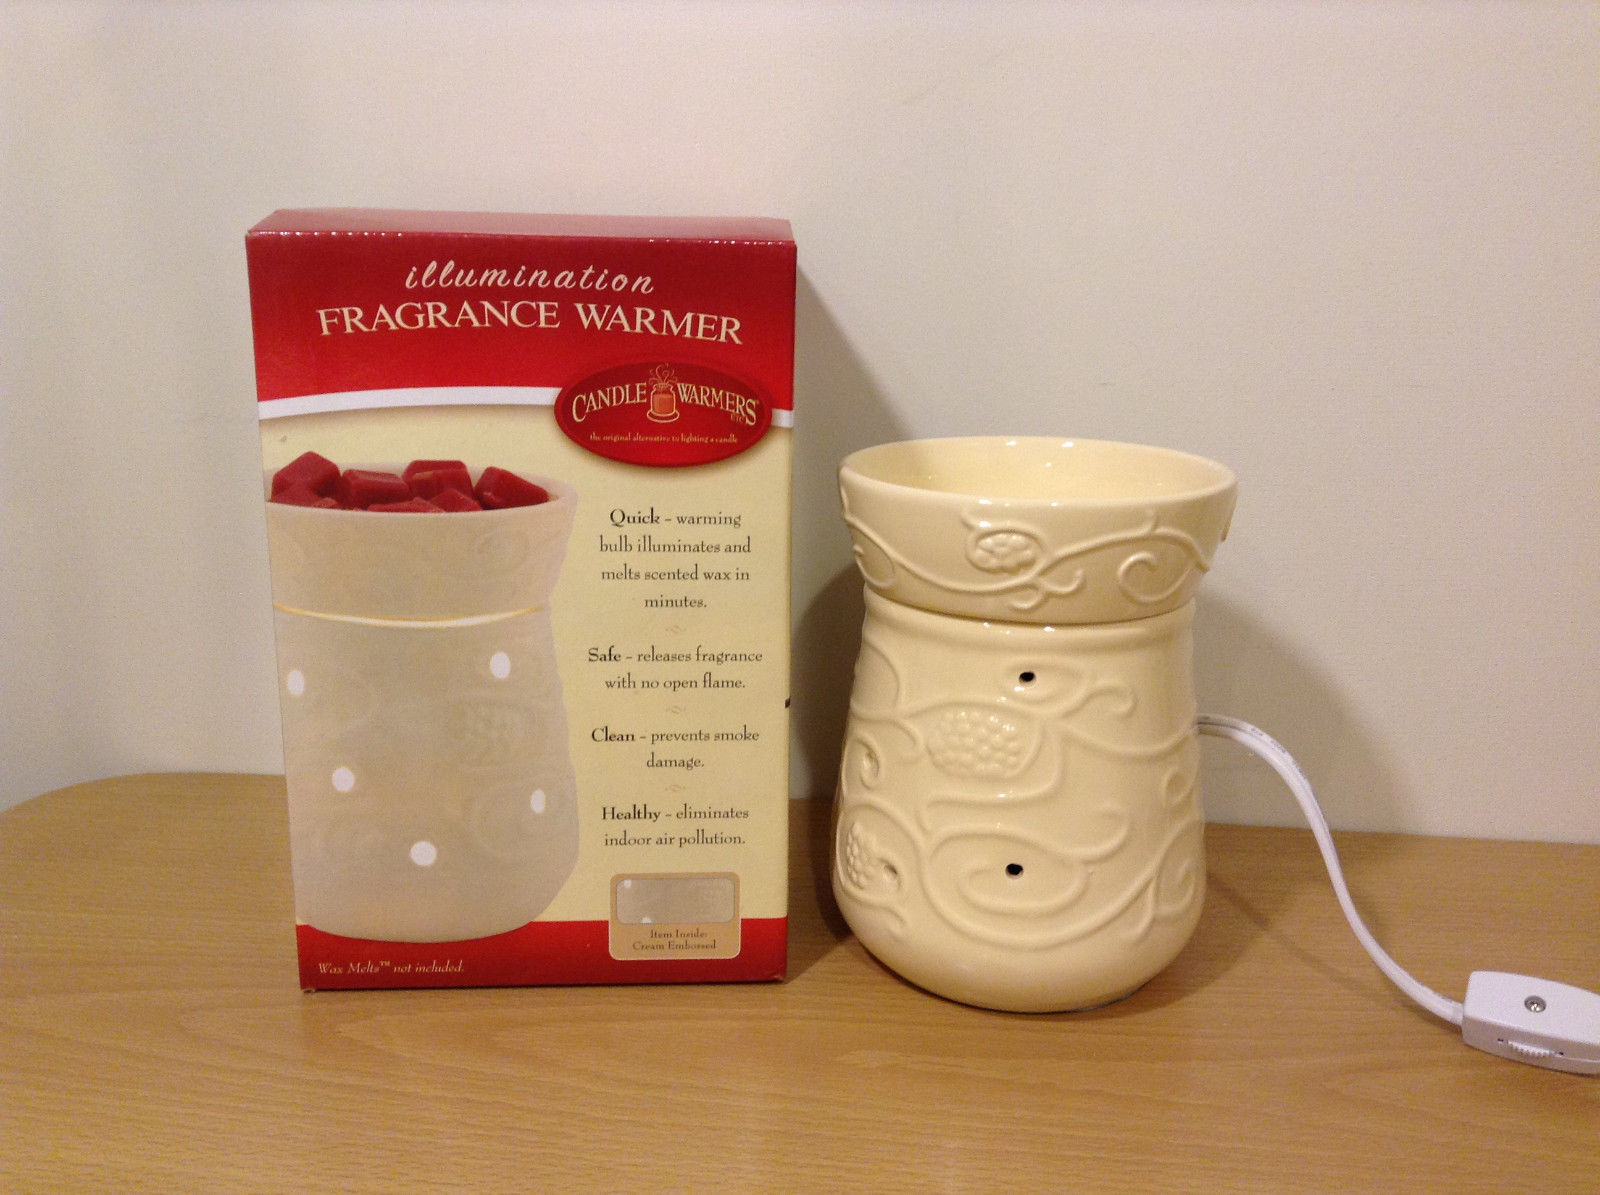 New in box Illumination Cream Embossed Ceramic Candle Fragrance Wax Warmer